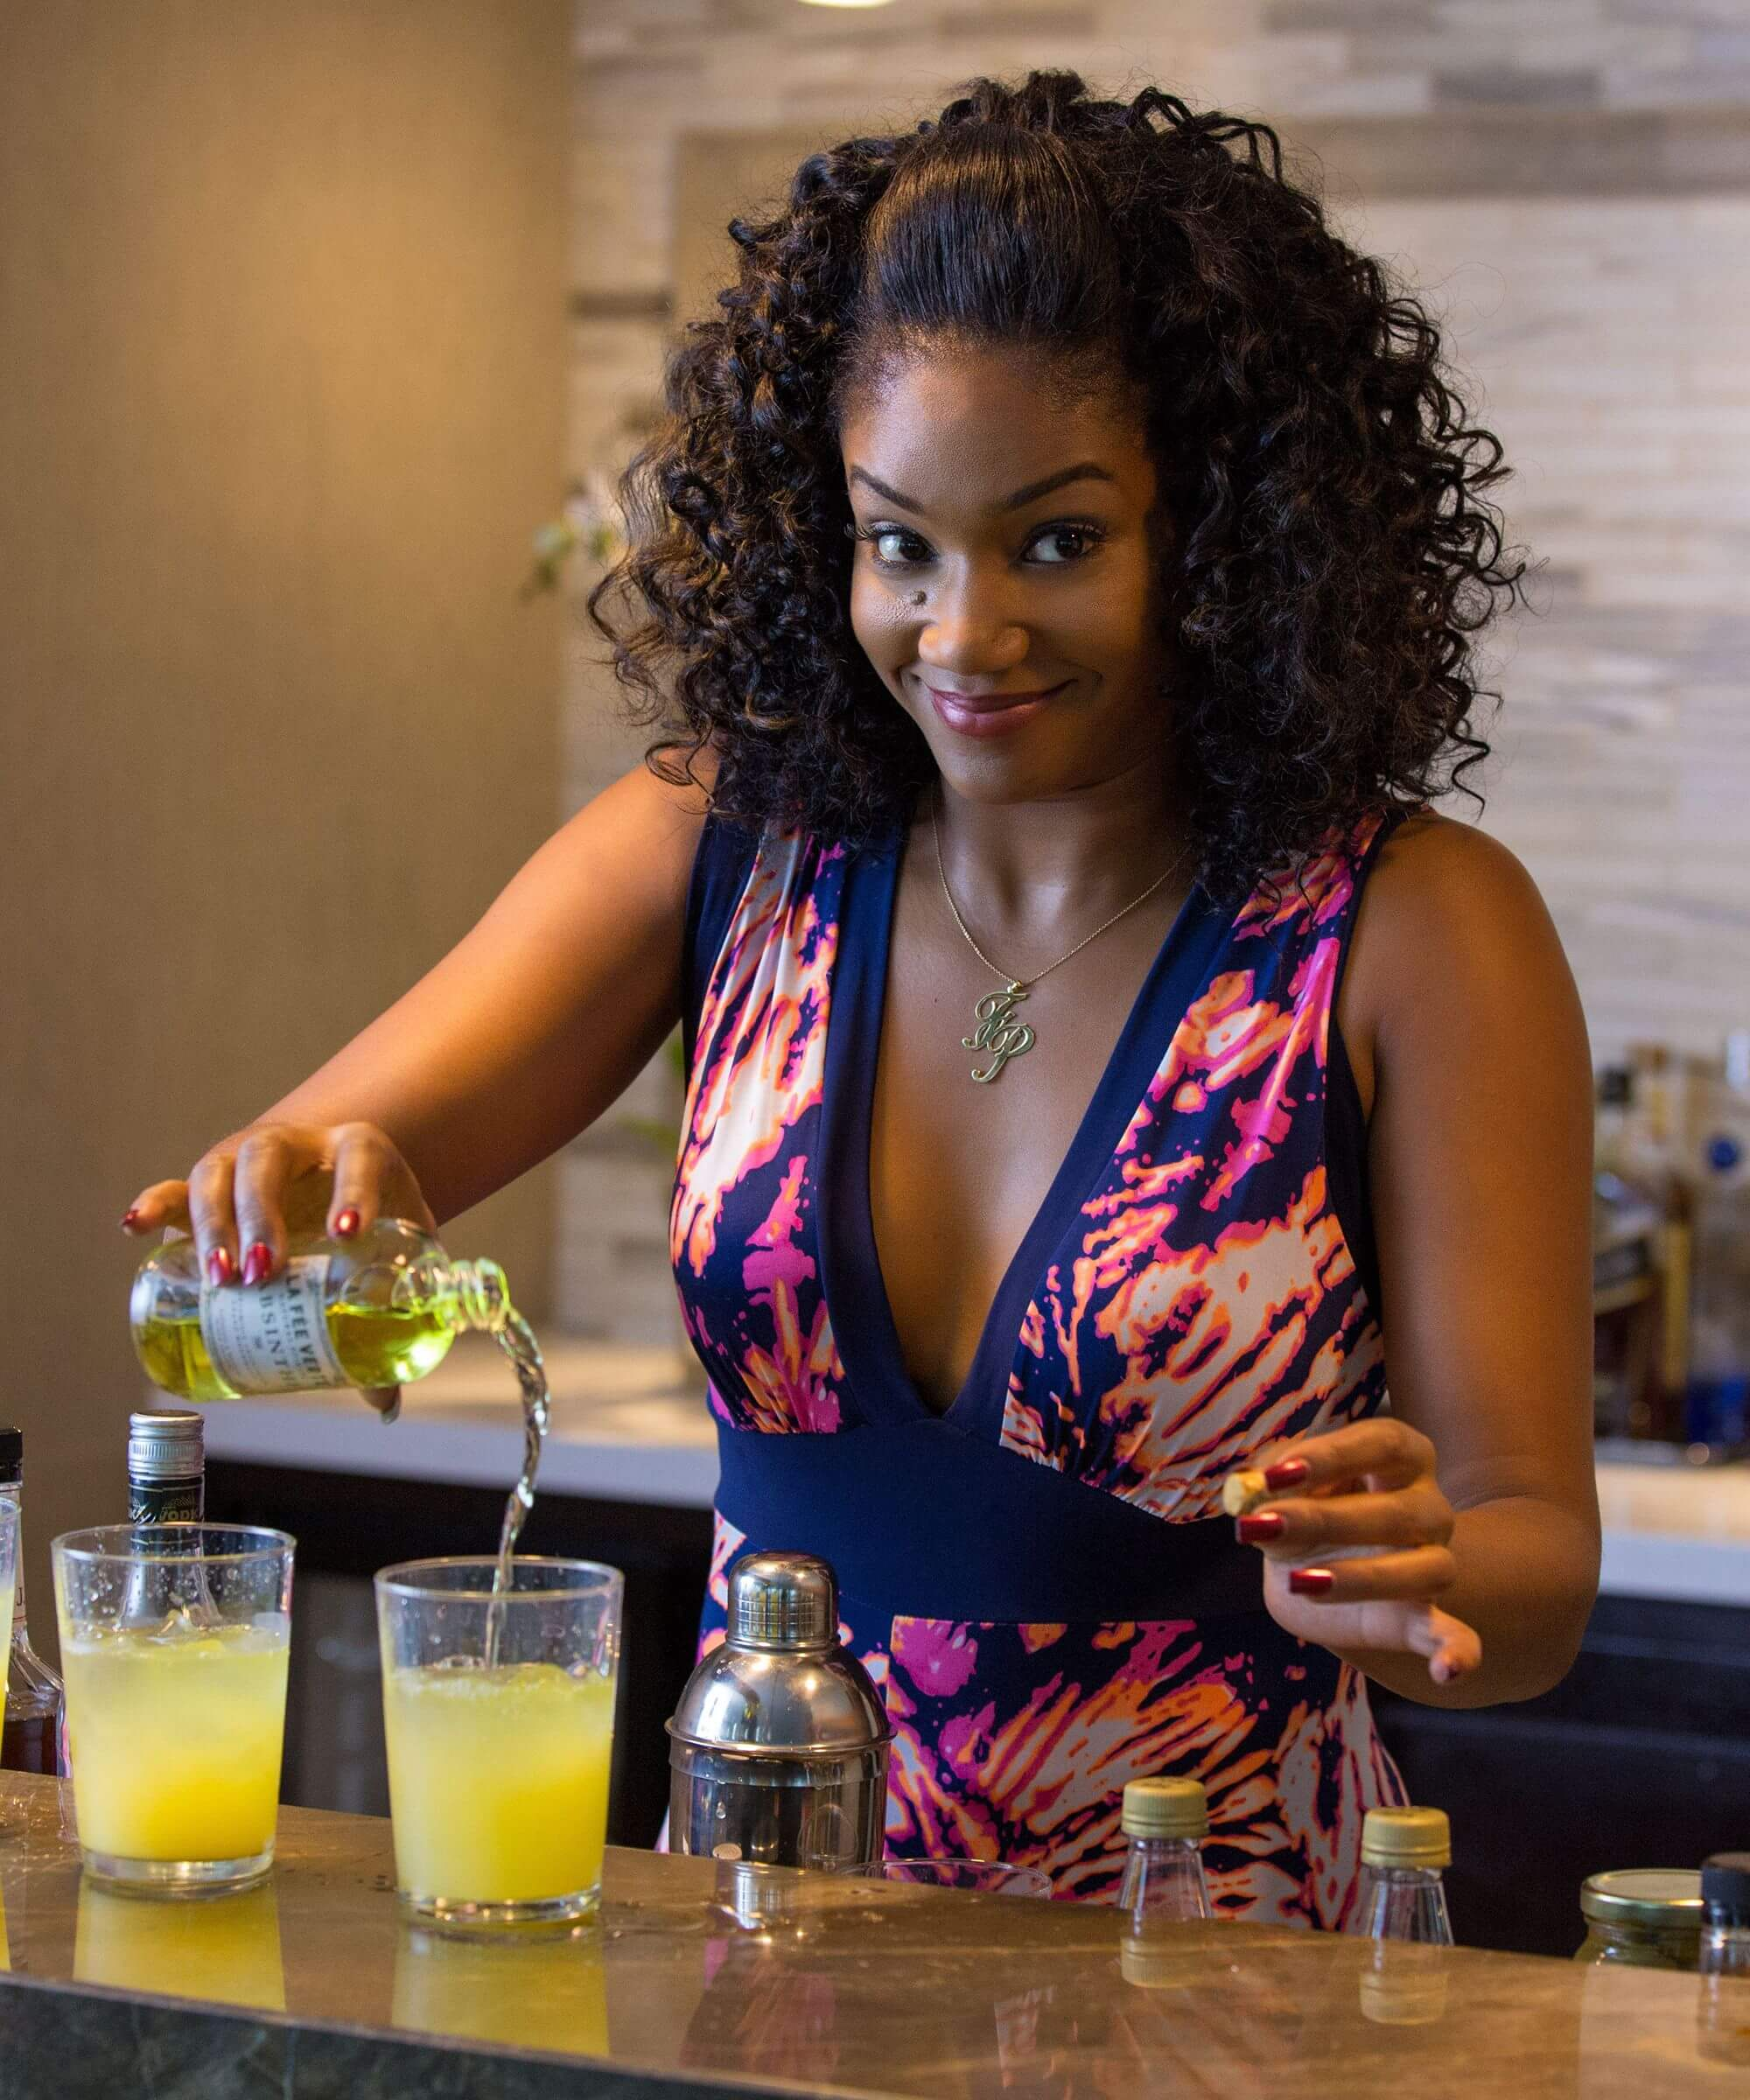 tiffany haddish hot cleavage pictures (2)